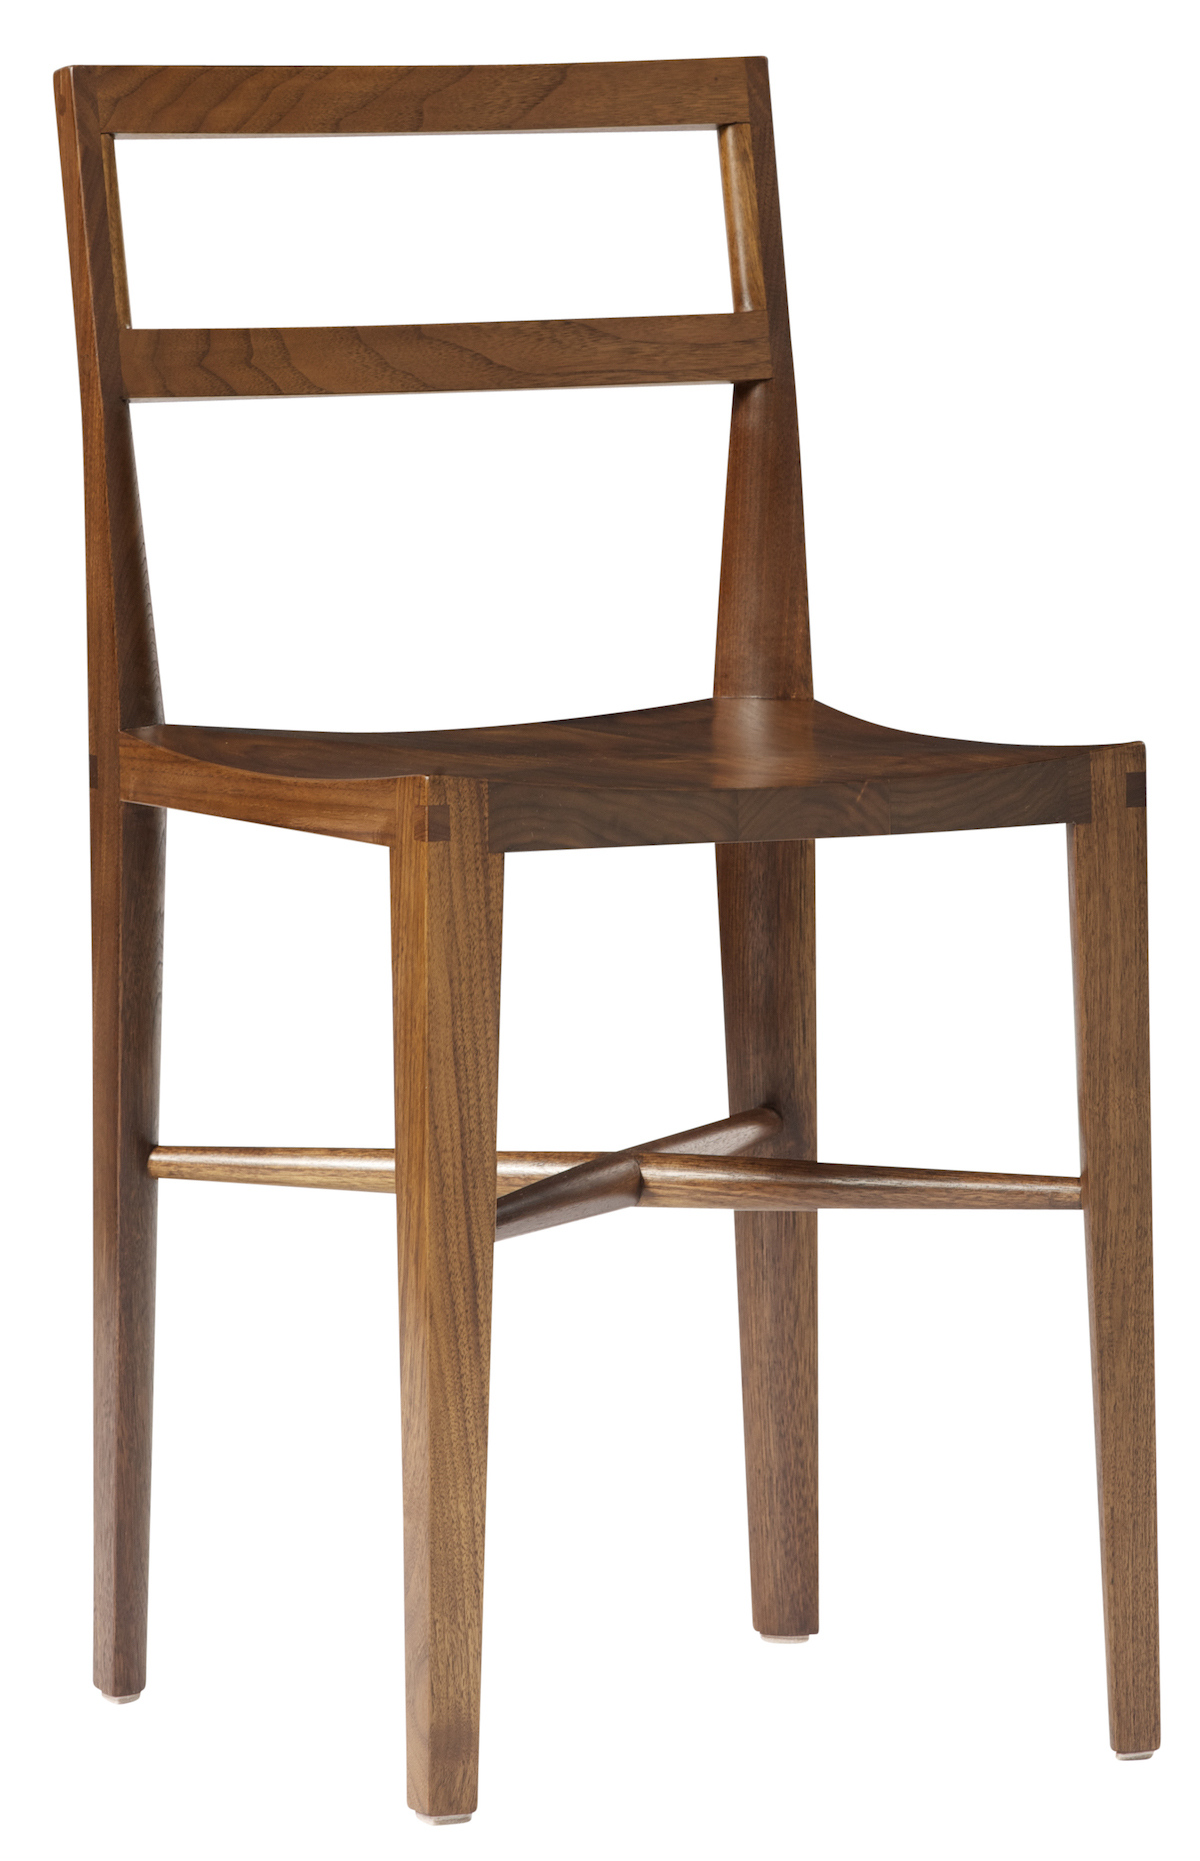 angled view of a Quarter Round Ladderback Chair by artist Christopher Kurtz